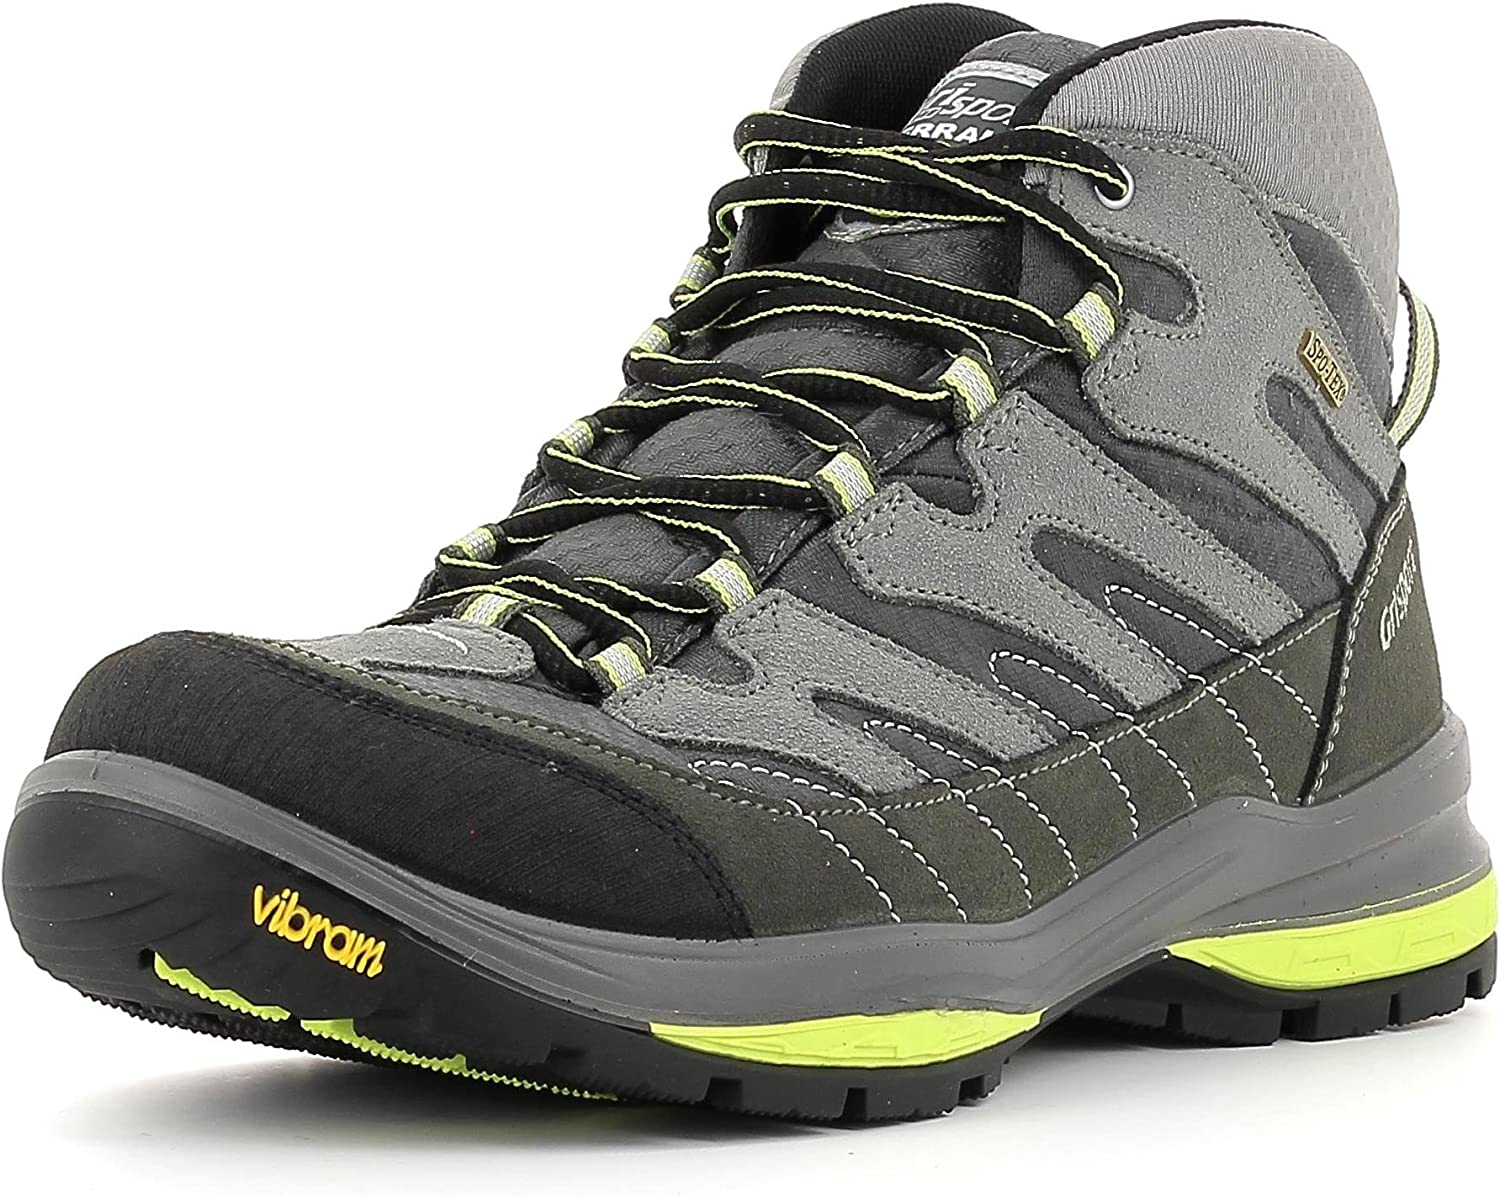 greyport Men's 12505 Terrain Mid Spotex Hiking shoes Grey Size  6 UK